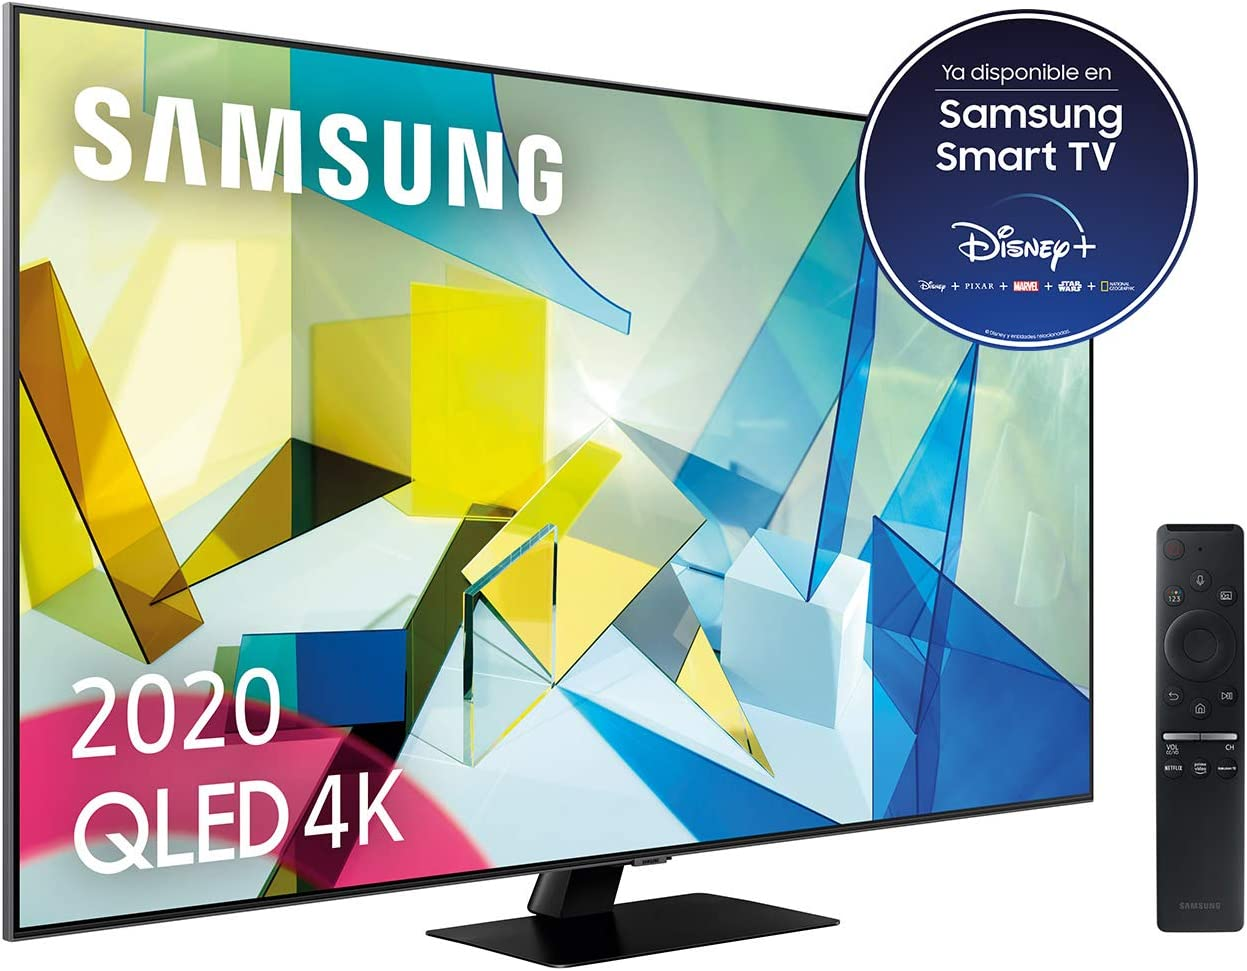 Samsung QLED 4K 2020 49Q80T - Smart TV de 49